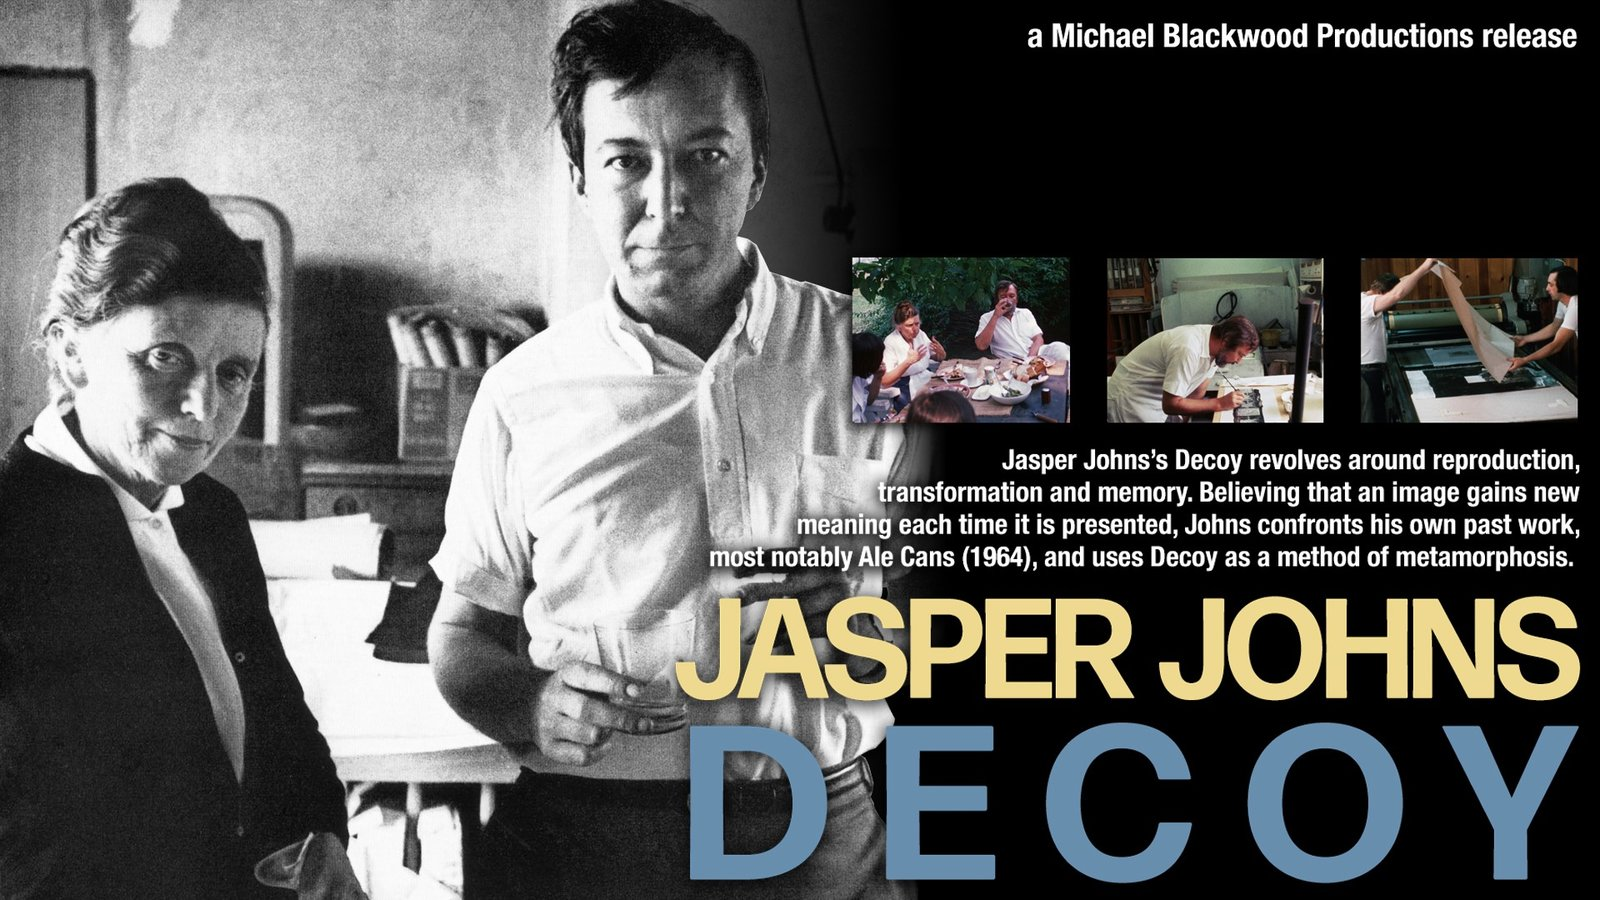 Jasper Johns: Decoy - An Artist Re-imagines his Past Work